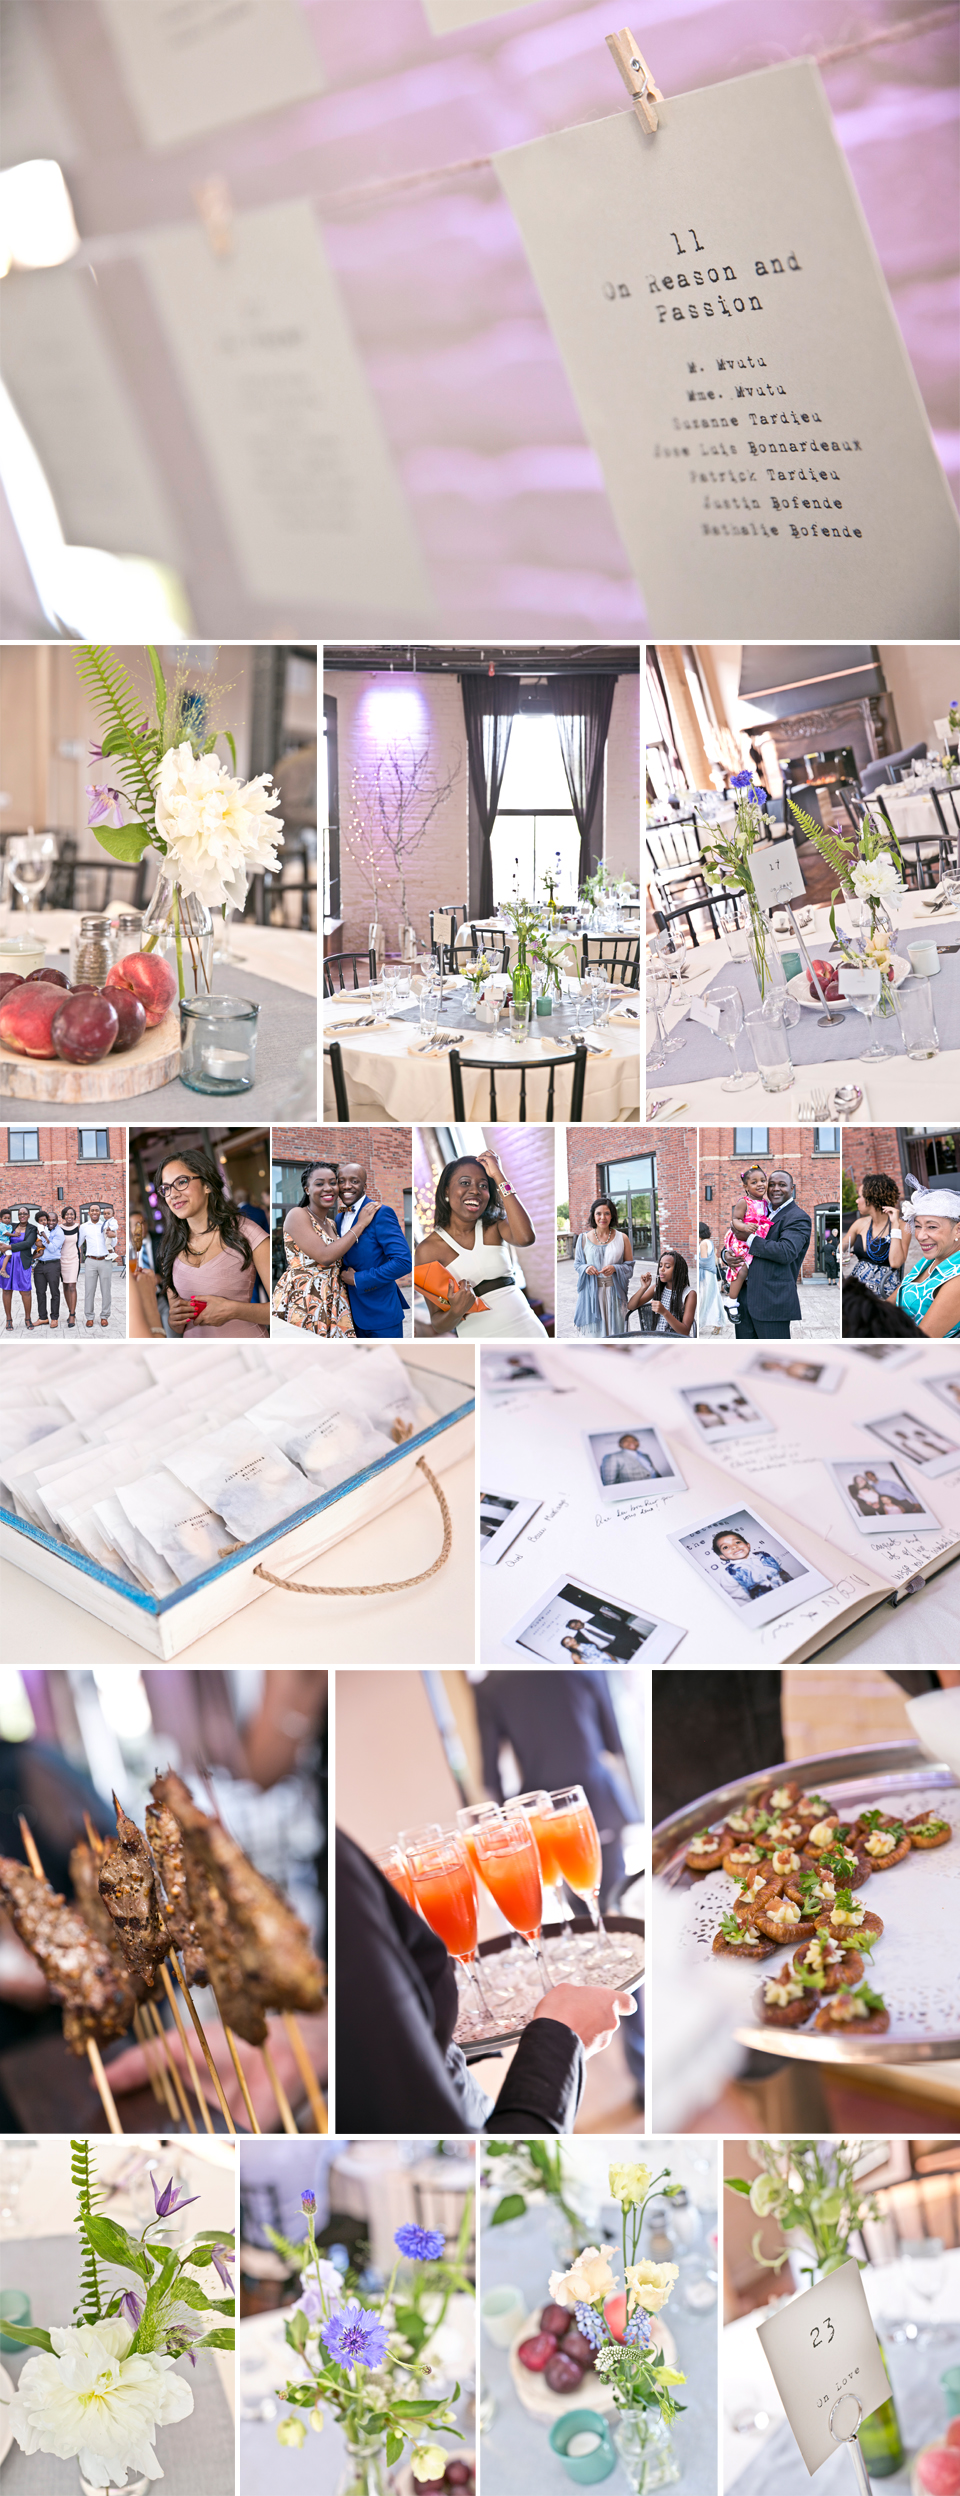 Montreal Wedding Photographer | Details | Chateau St. Ambroise | Montreal Quebec | LMP Photography and Videography